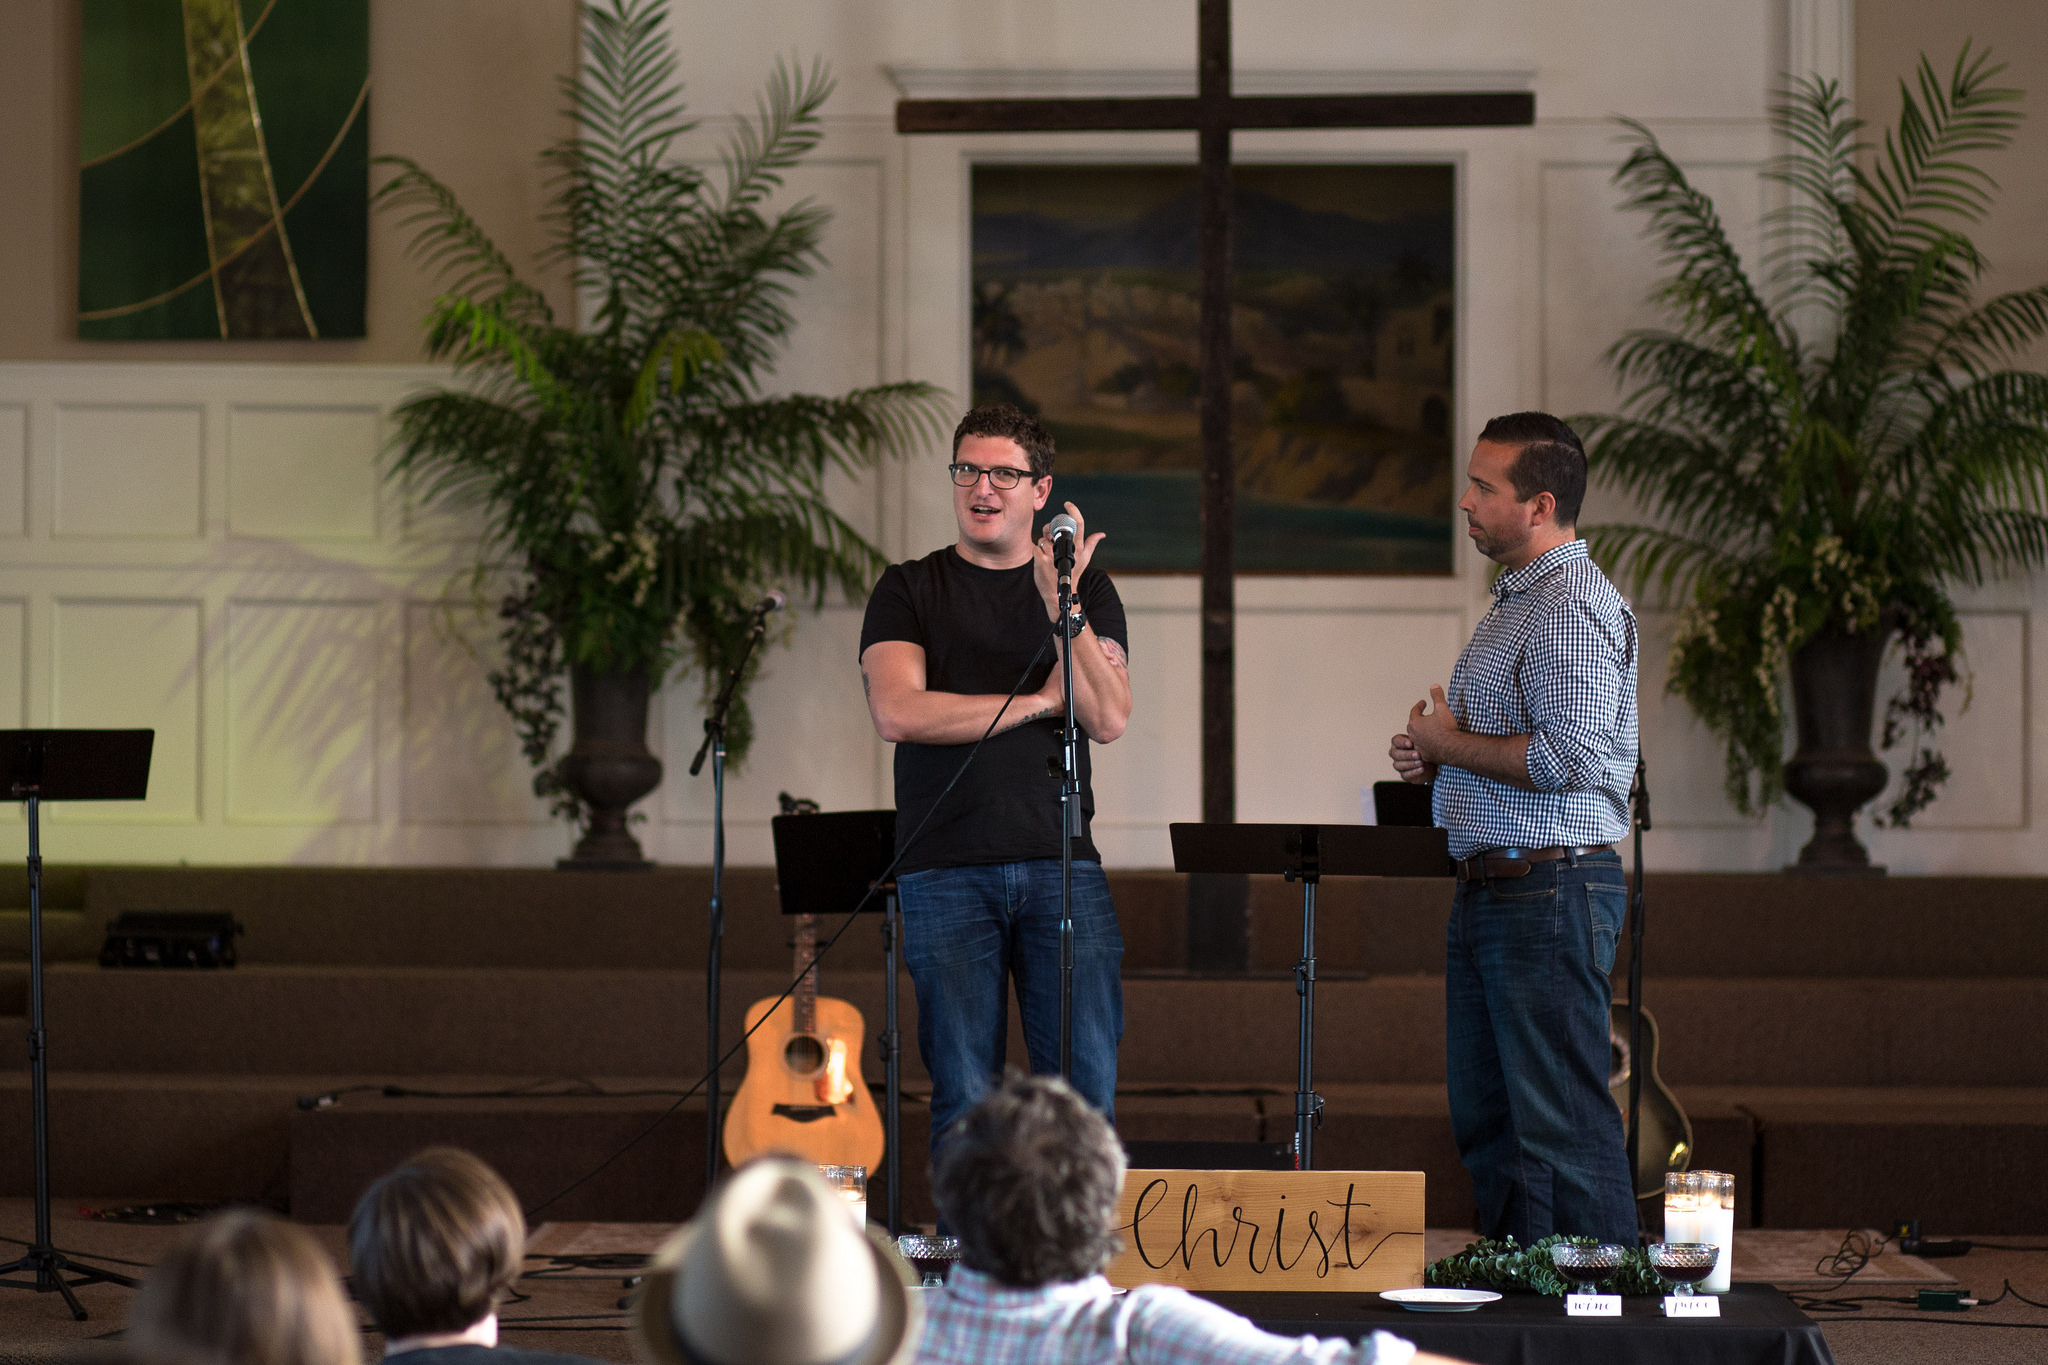 Mike Cosper, one of the founders of Sojourn and author of Rhythms of Grace, spent some time with our worship leaders.